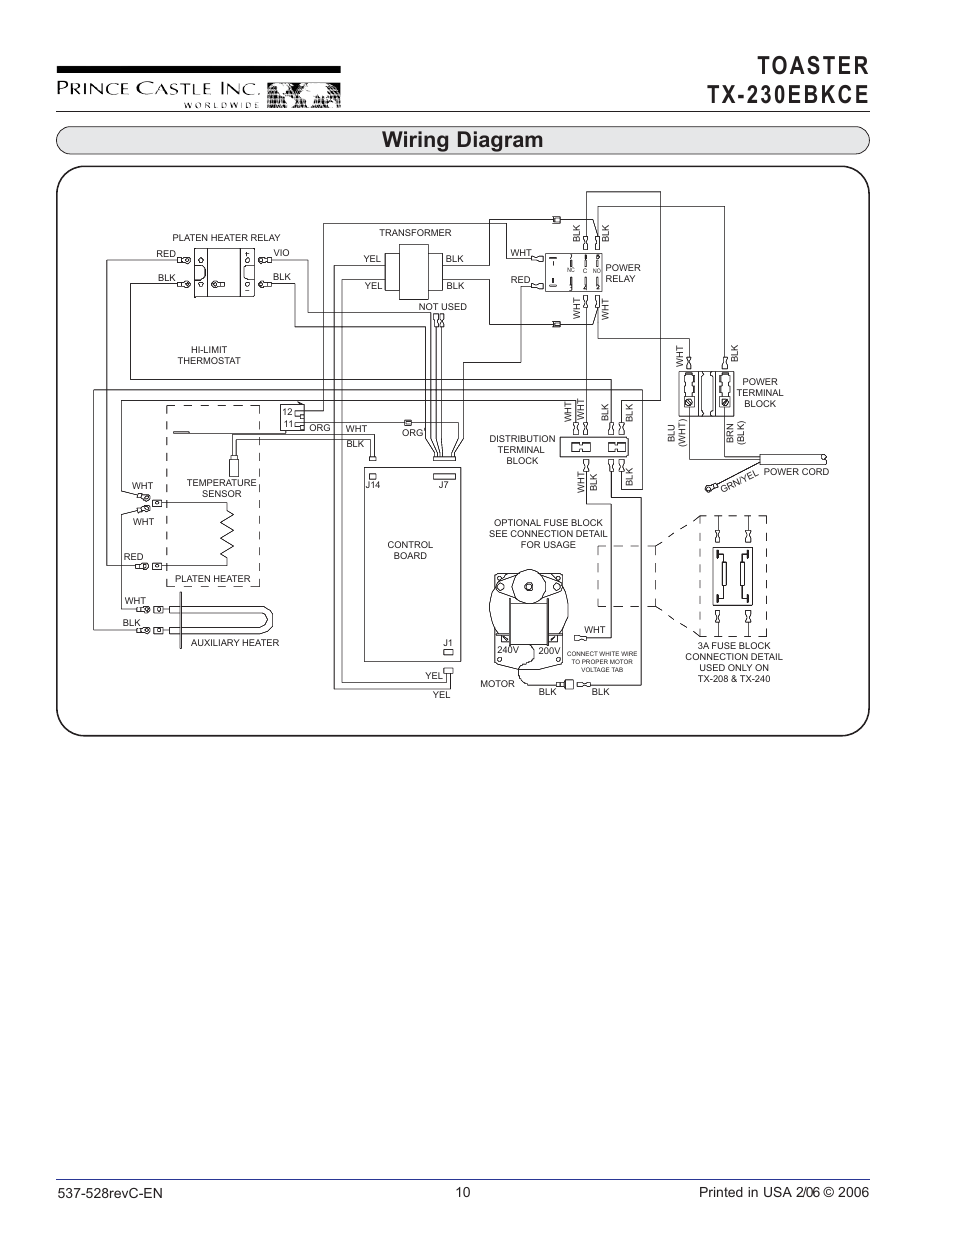 hight resolution of toaster tx 230 ebkce wiring diagram prince castle tx 230ebkce user manual